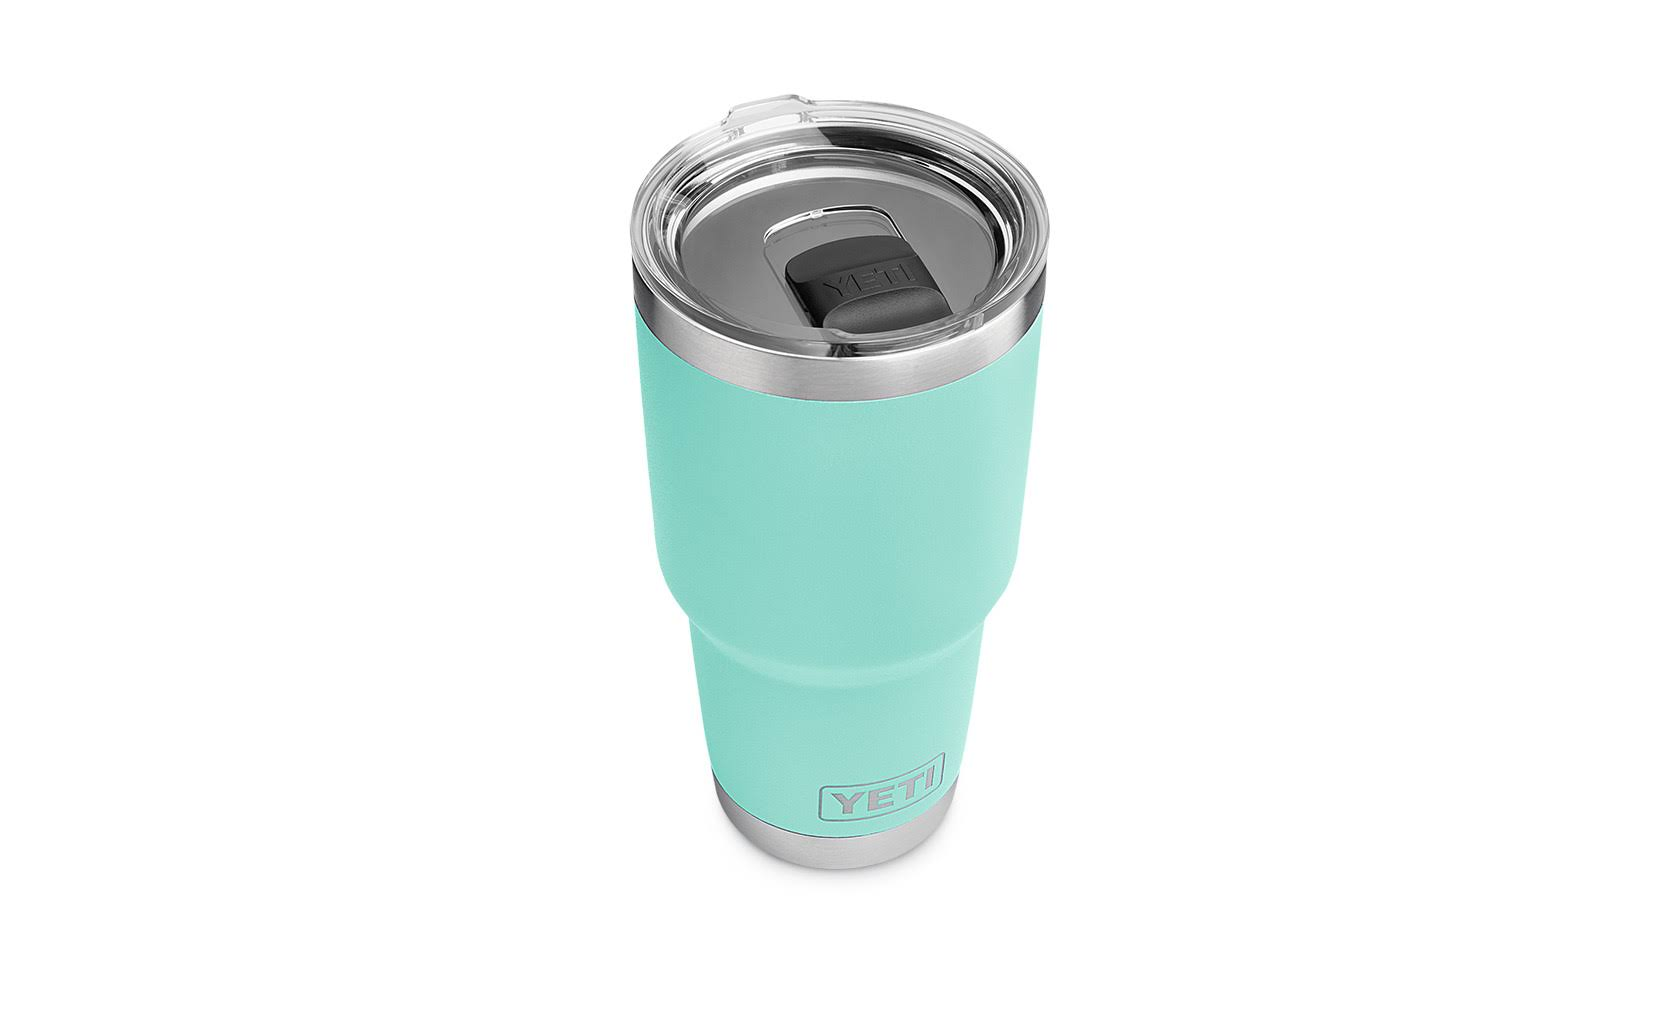 Yeti Rambler Stainless Steel Vacuum Insulated Tumbler - Green, 30oz